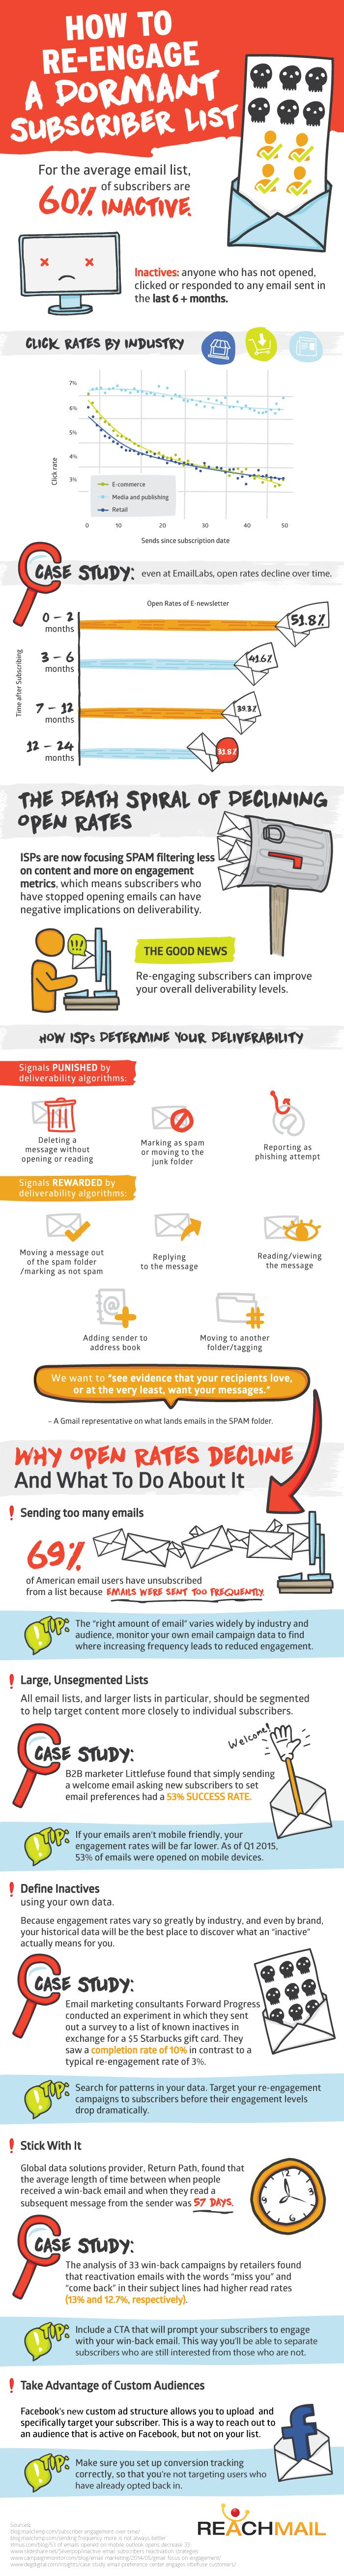 This infographic illustrates when you should remove non responders in your email list and how to keep subscribers engaged to prevent inactive users